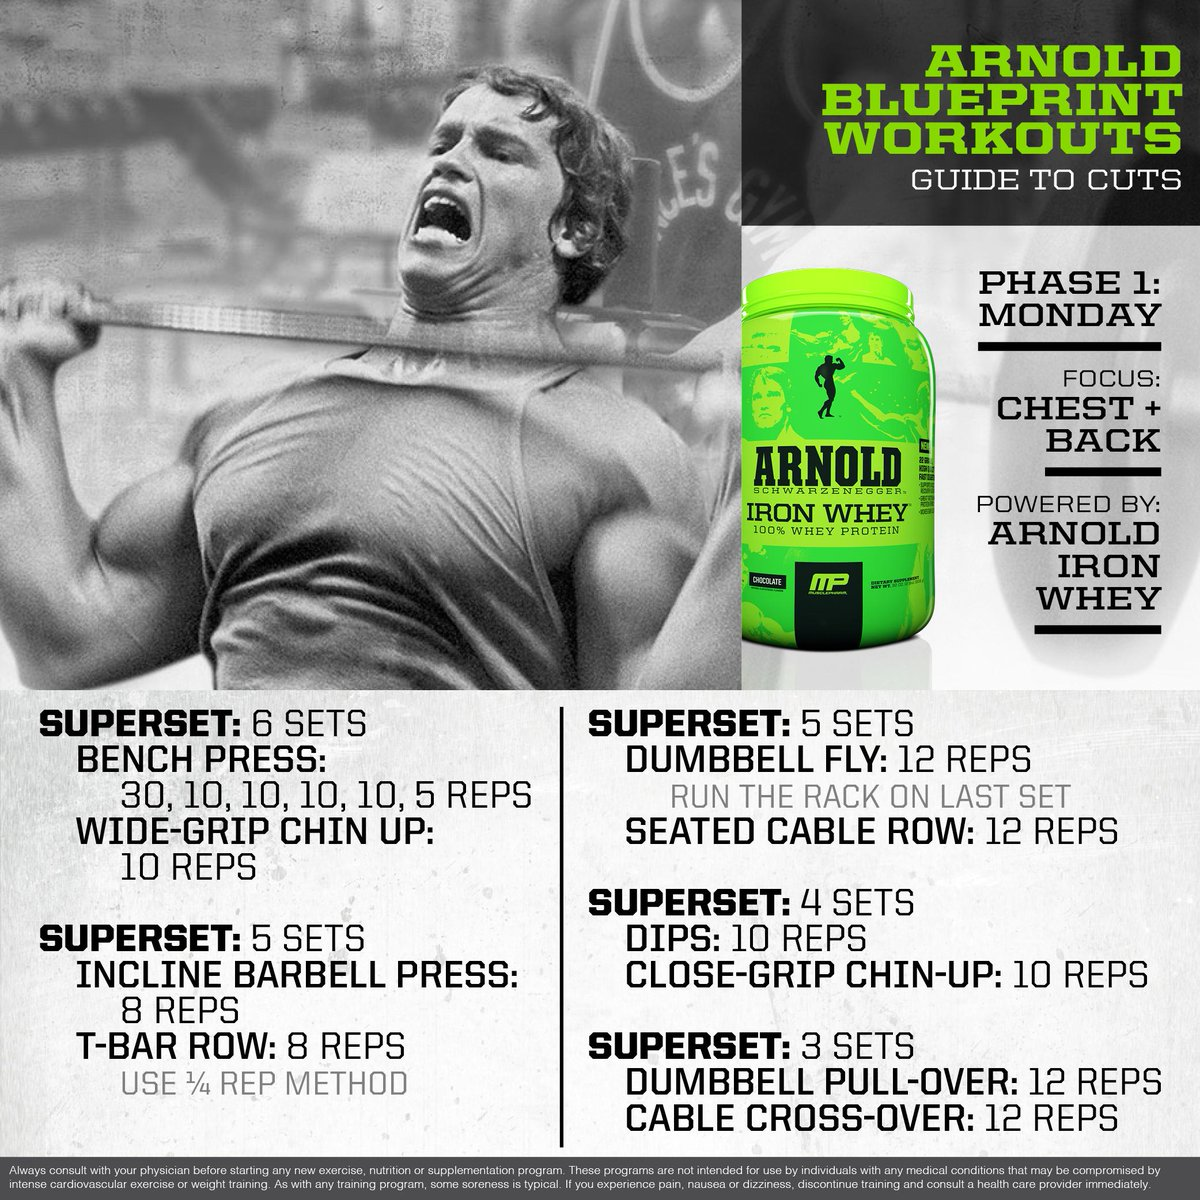 Musclepharm on twitter mp workout of the day arnold blueprint musclepharm on twitter mp workout of the day arnold blueprint to cut chest and back powered by ironwhey httptva19bu1t9e malvernweather Choice Image